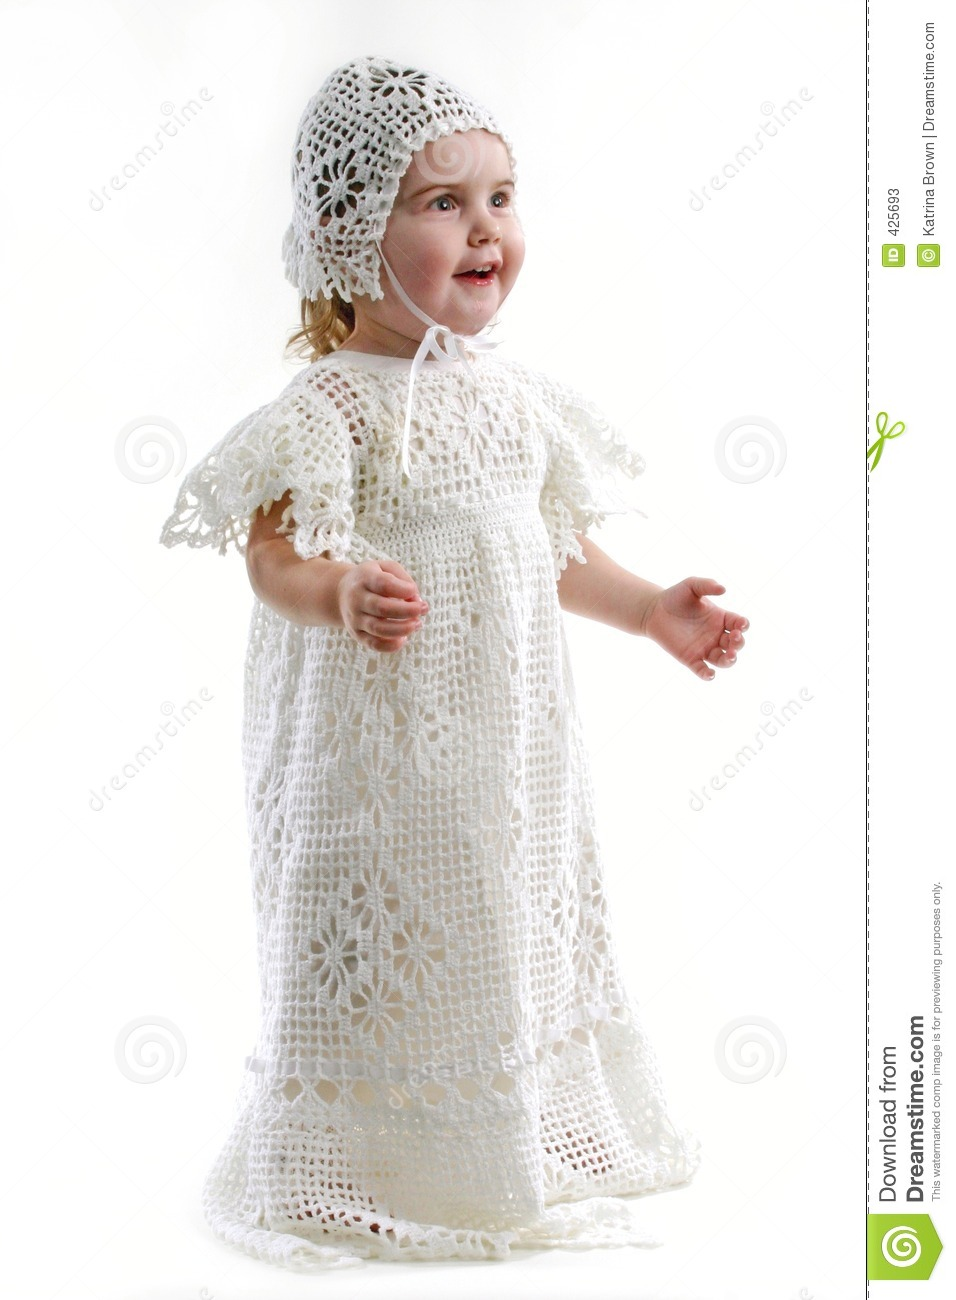 Baby Girl In Christening Gown Stock Image  Image of